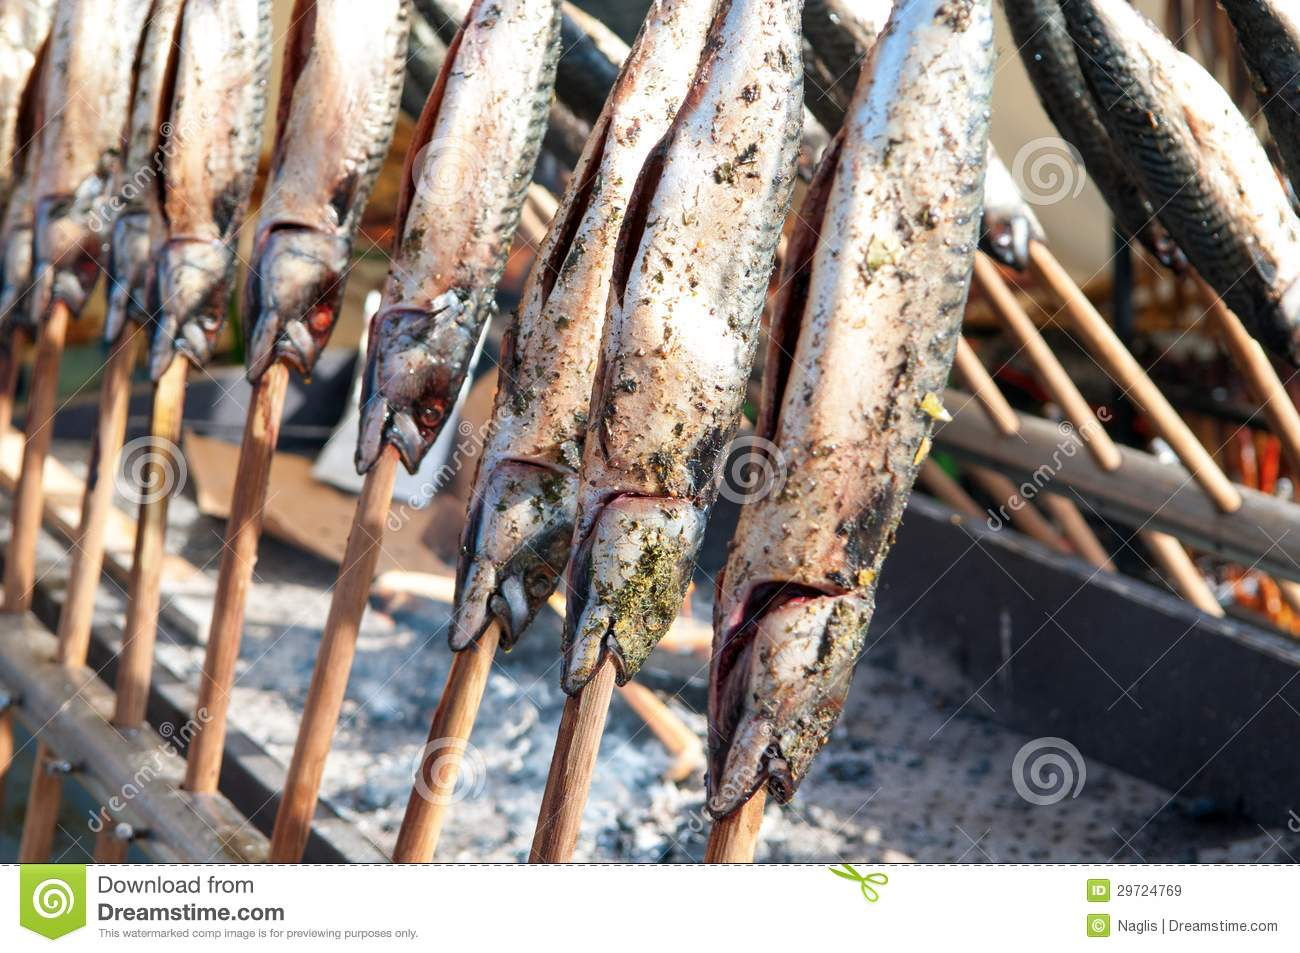 Mackerel on a stick 2 stock image image of healthy for Fish on a stick